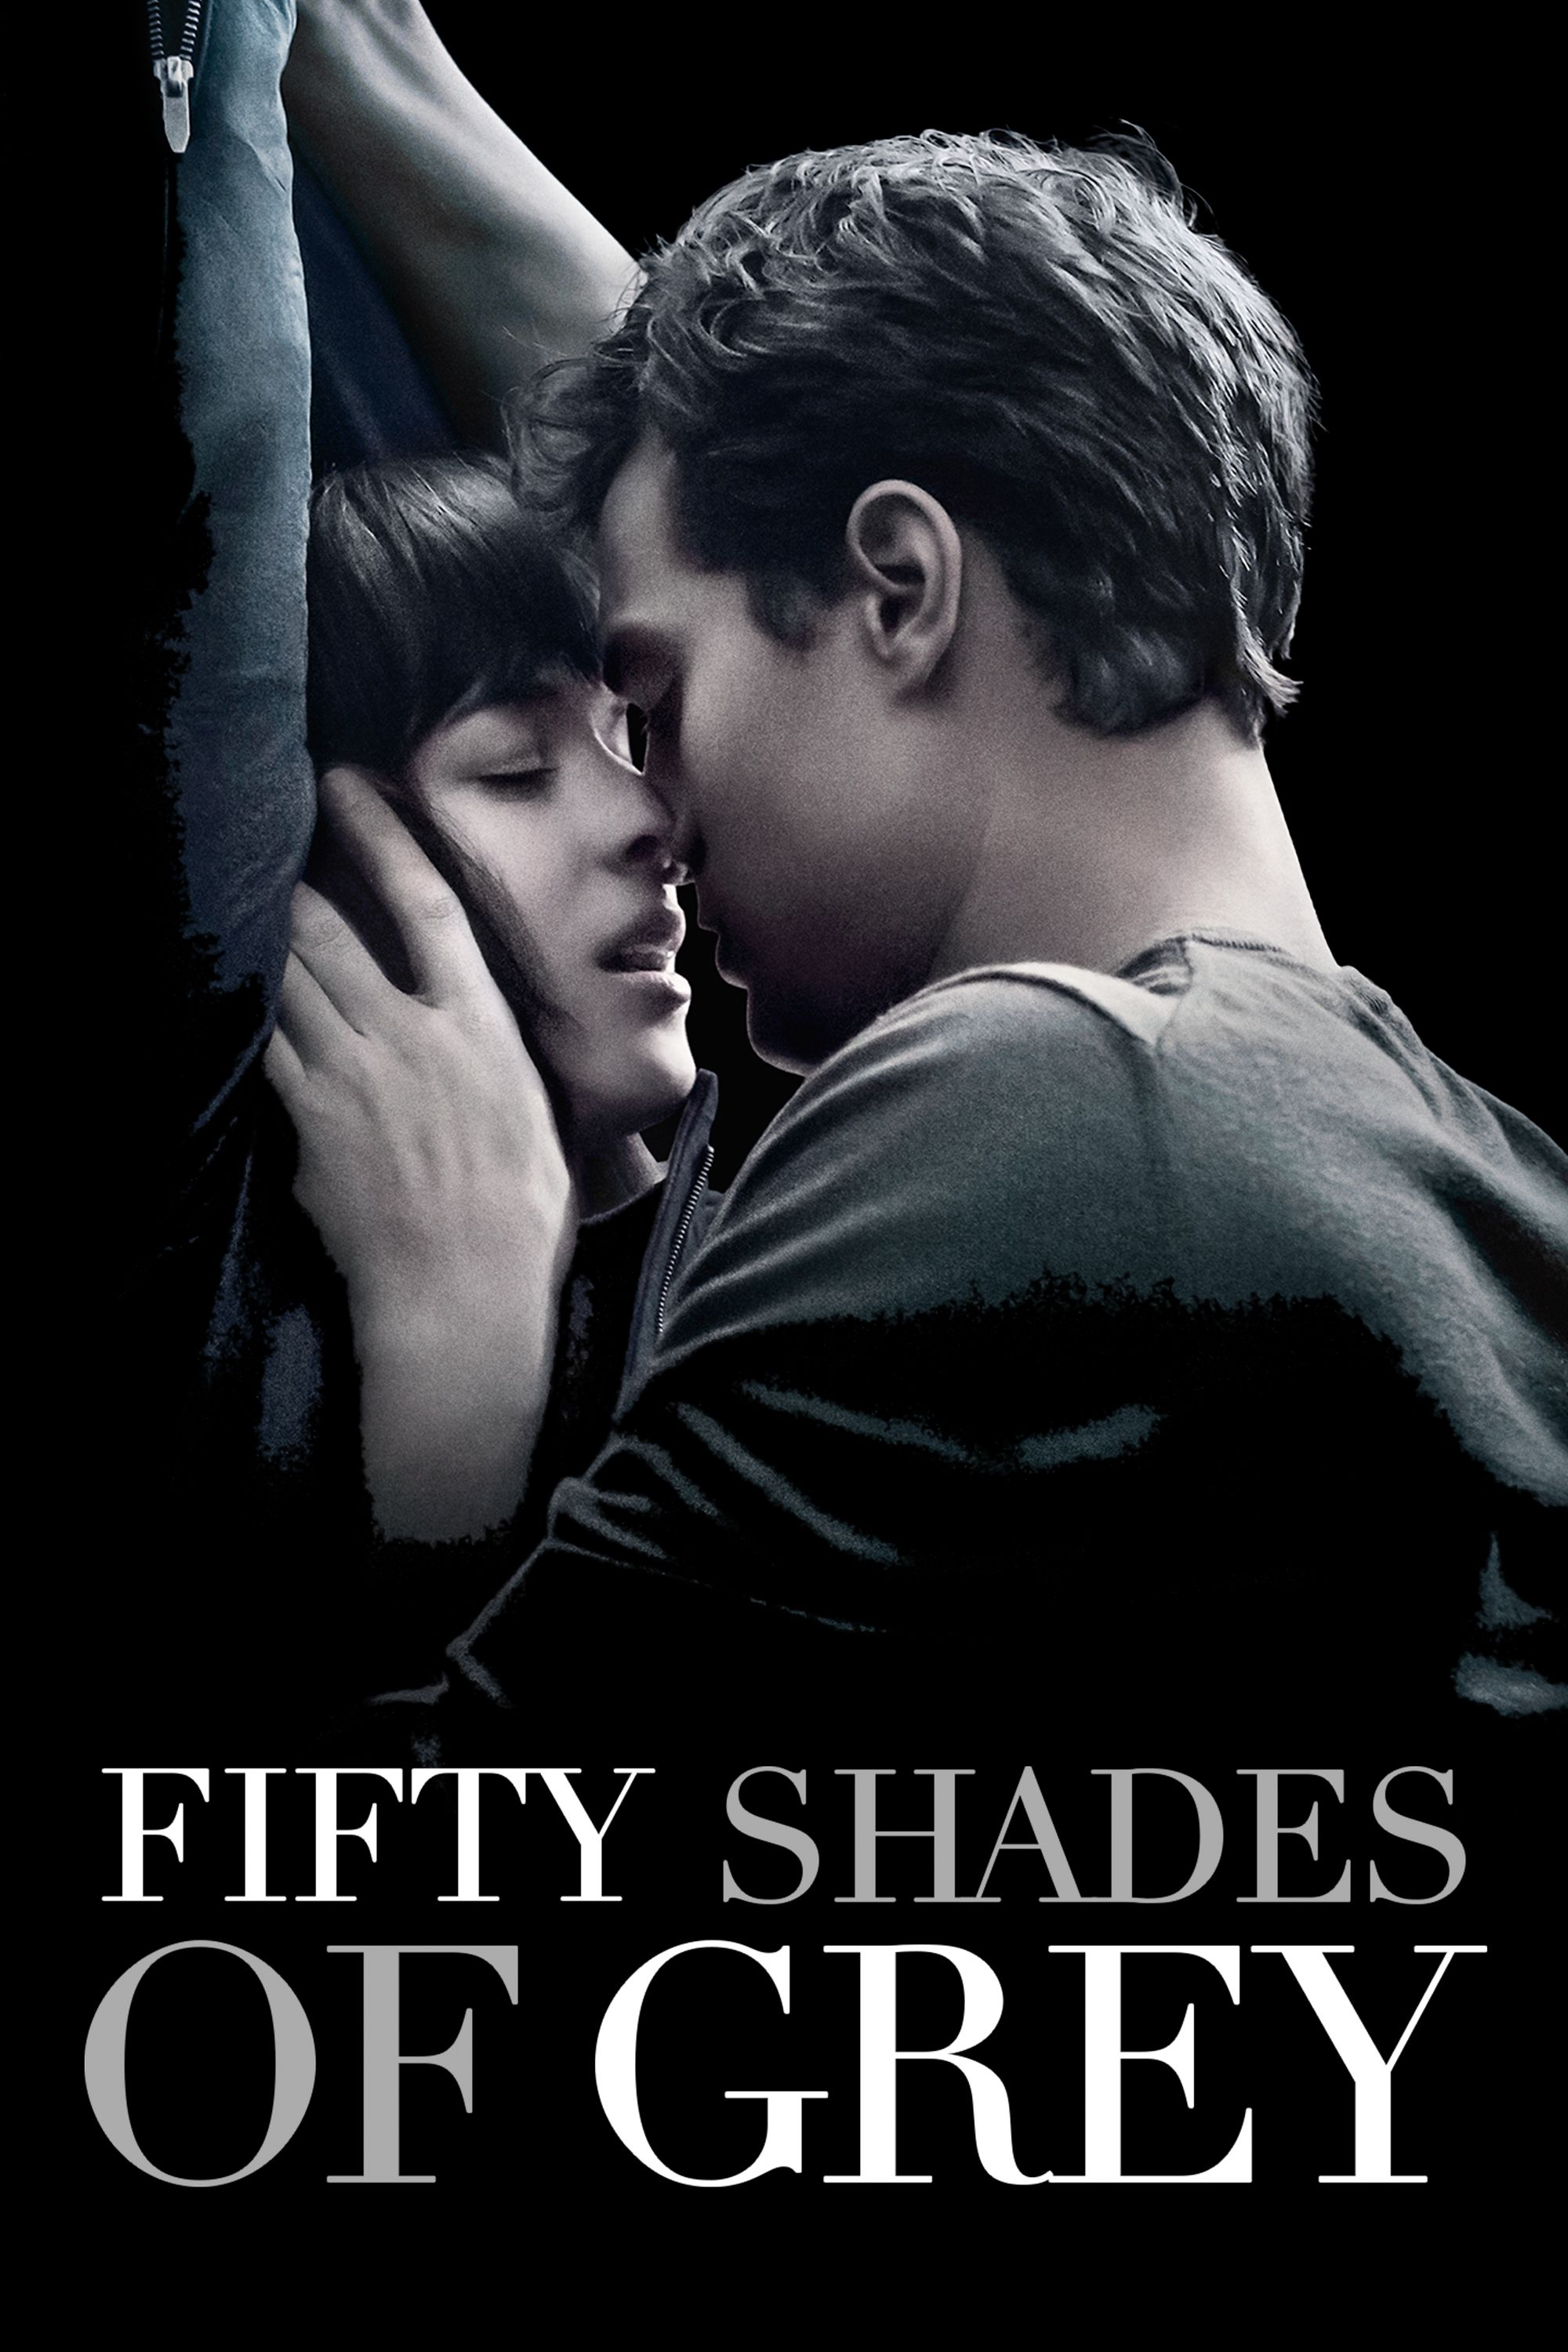 fifty shades of grey full movie part 1 free